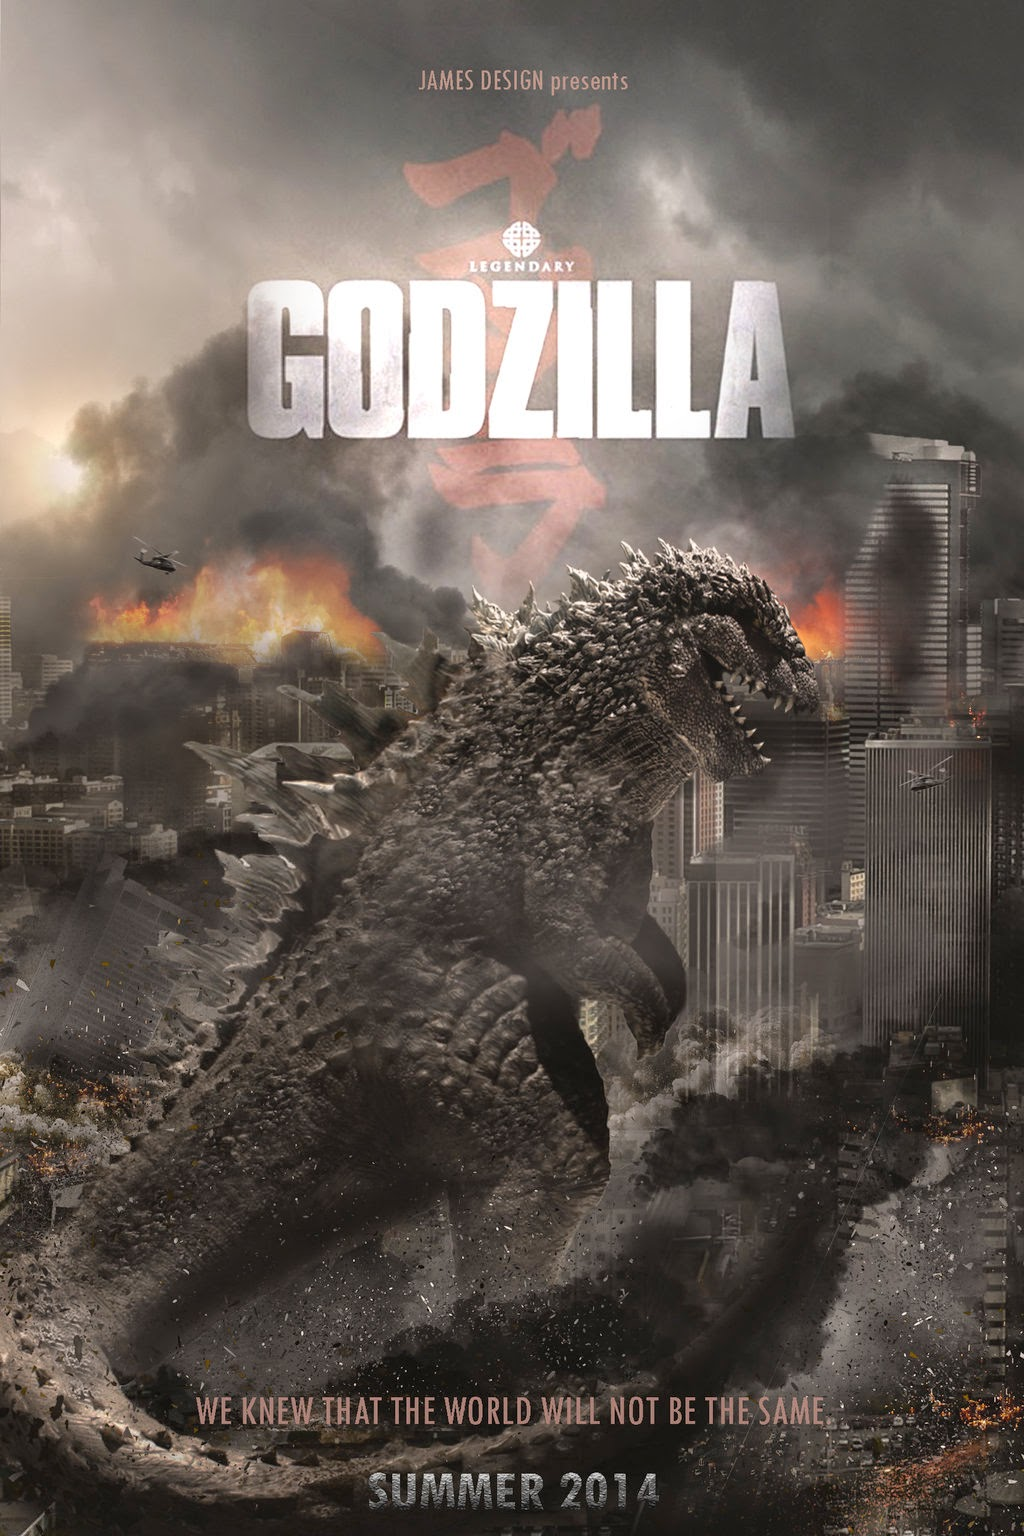 Godzilla 2014 Ver gratis online en vivo streaming sin descarga ni torrent